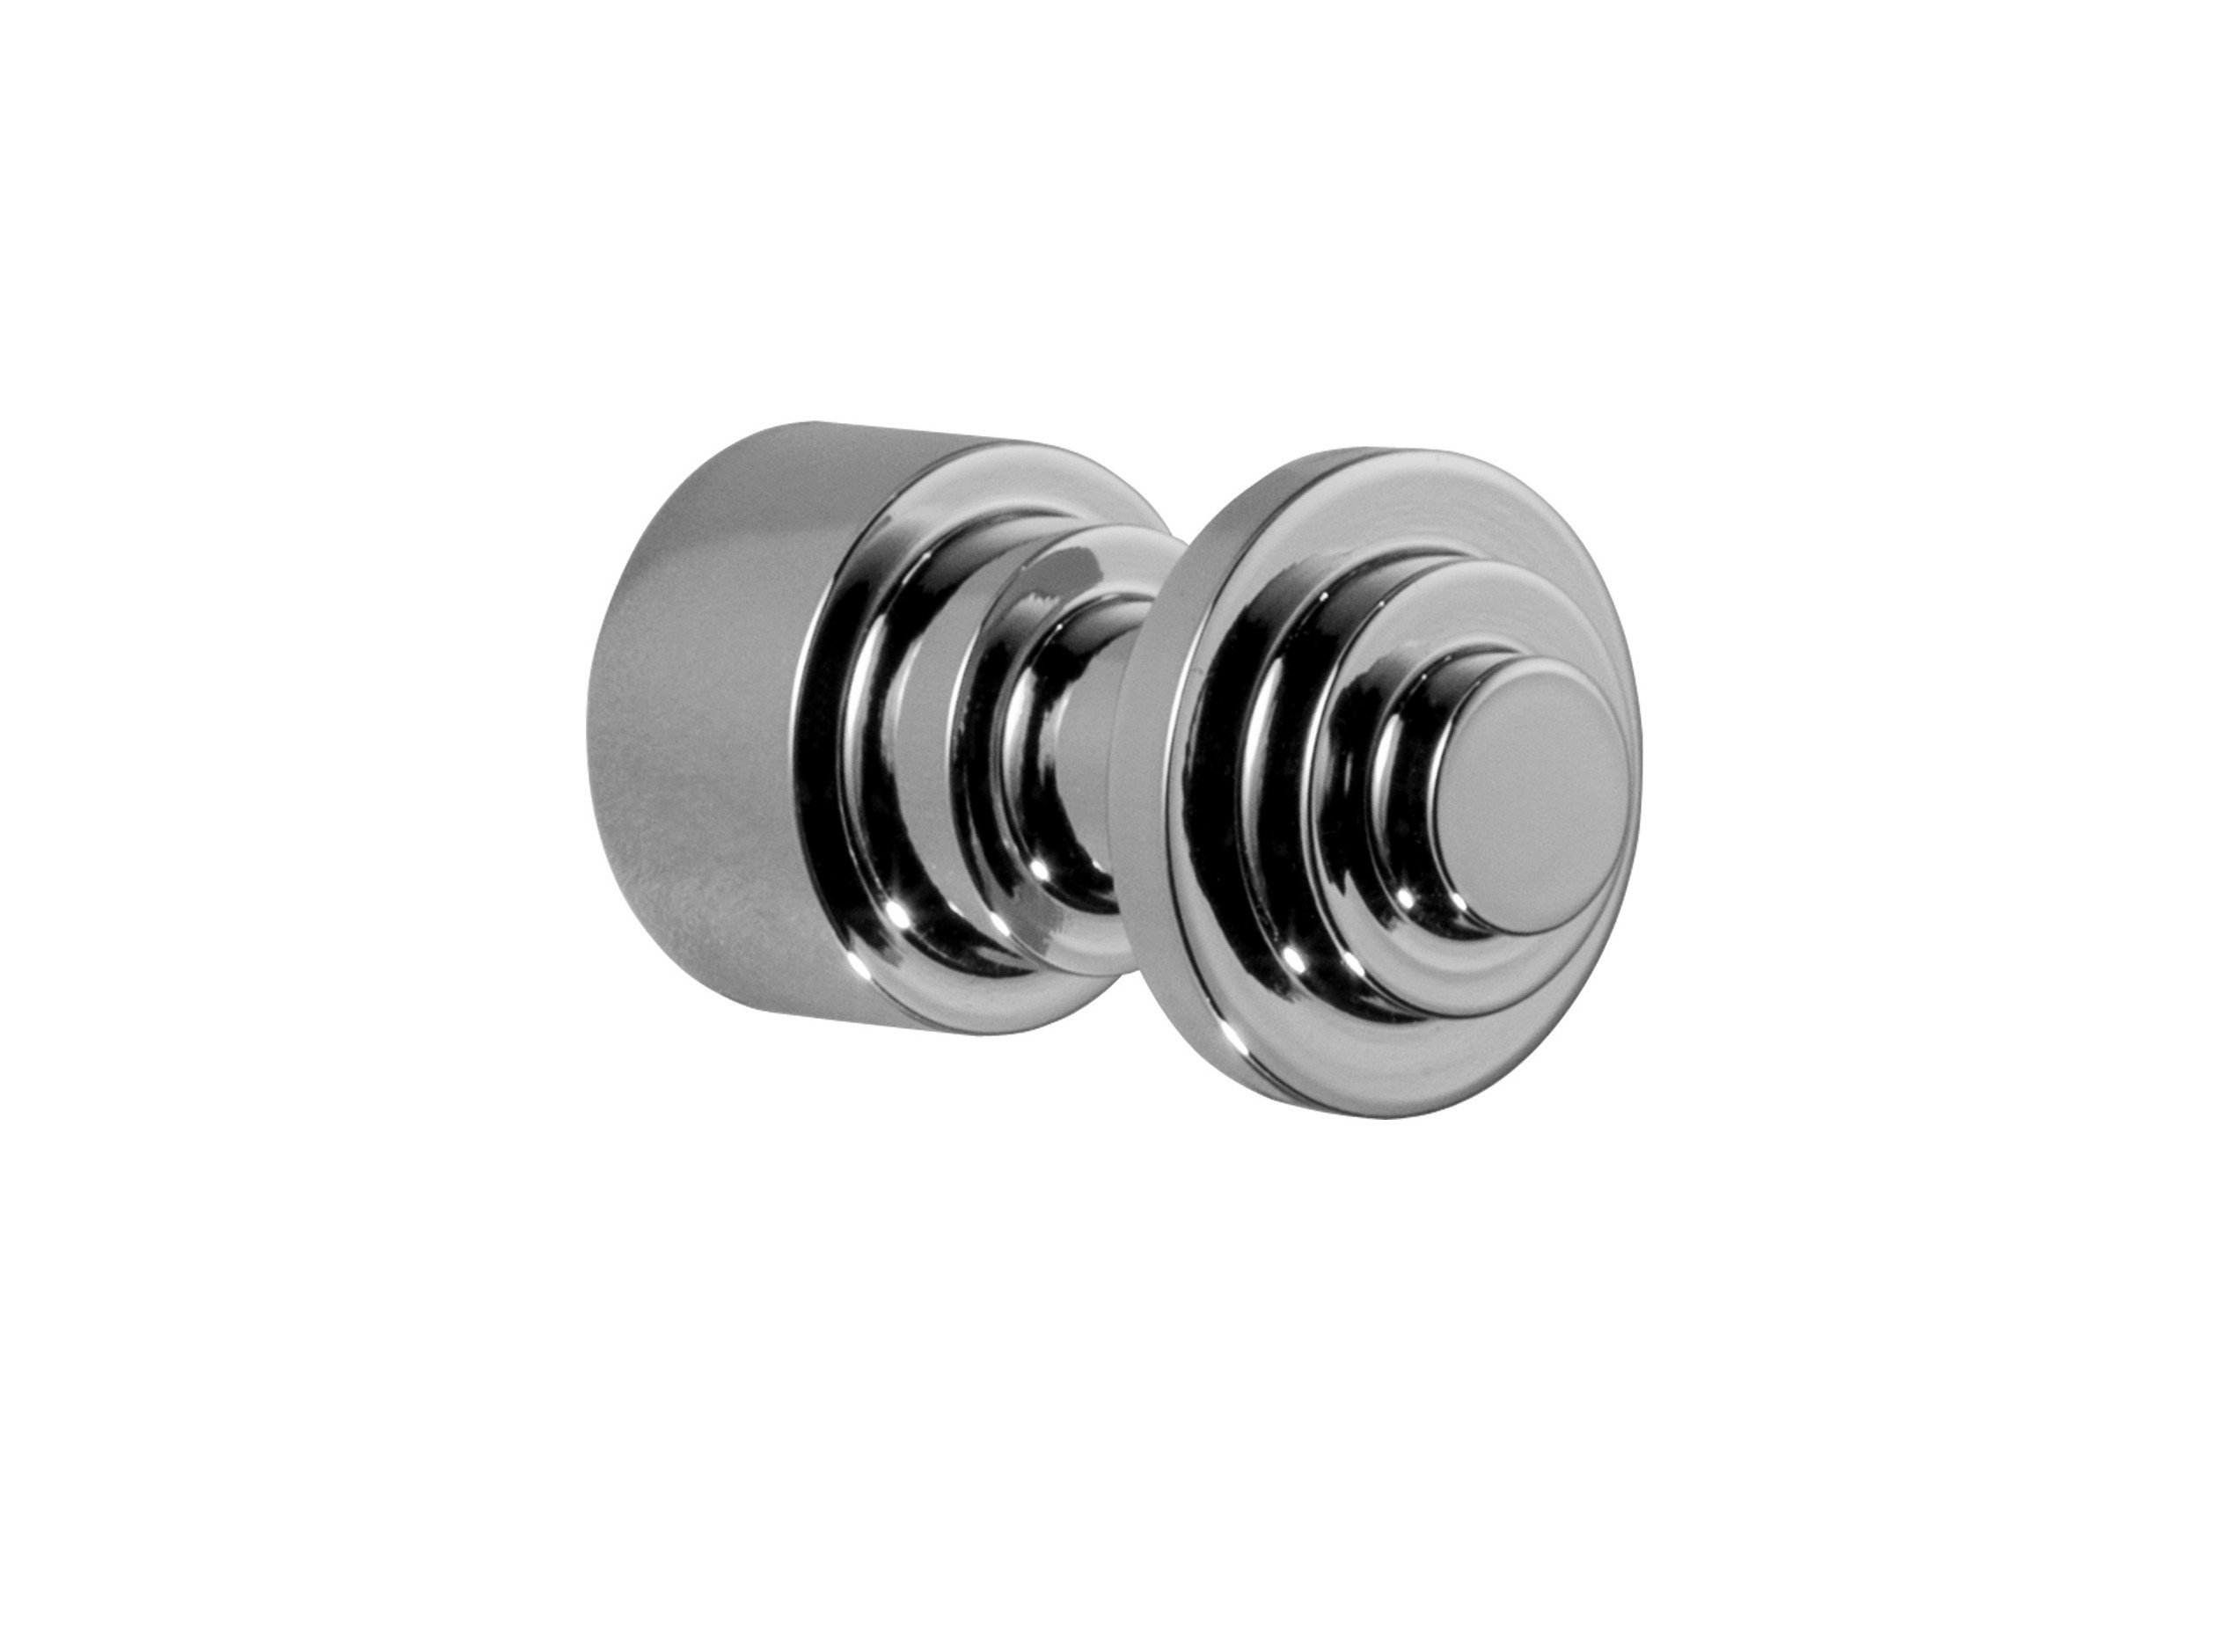 W-Luxury Scala Wall Small Towel Robe Hook Hanger for Bath/Kitchen Towel Holder, Brass (Polished Chrome)